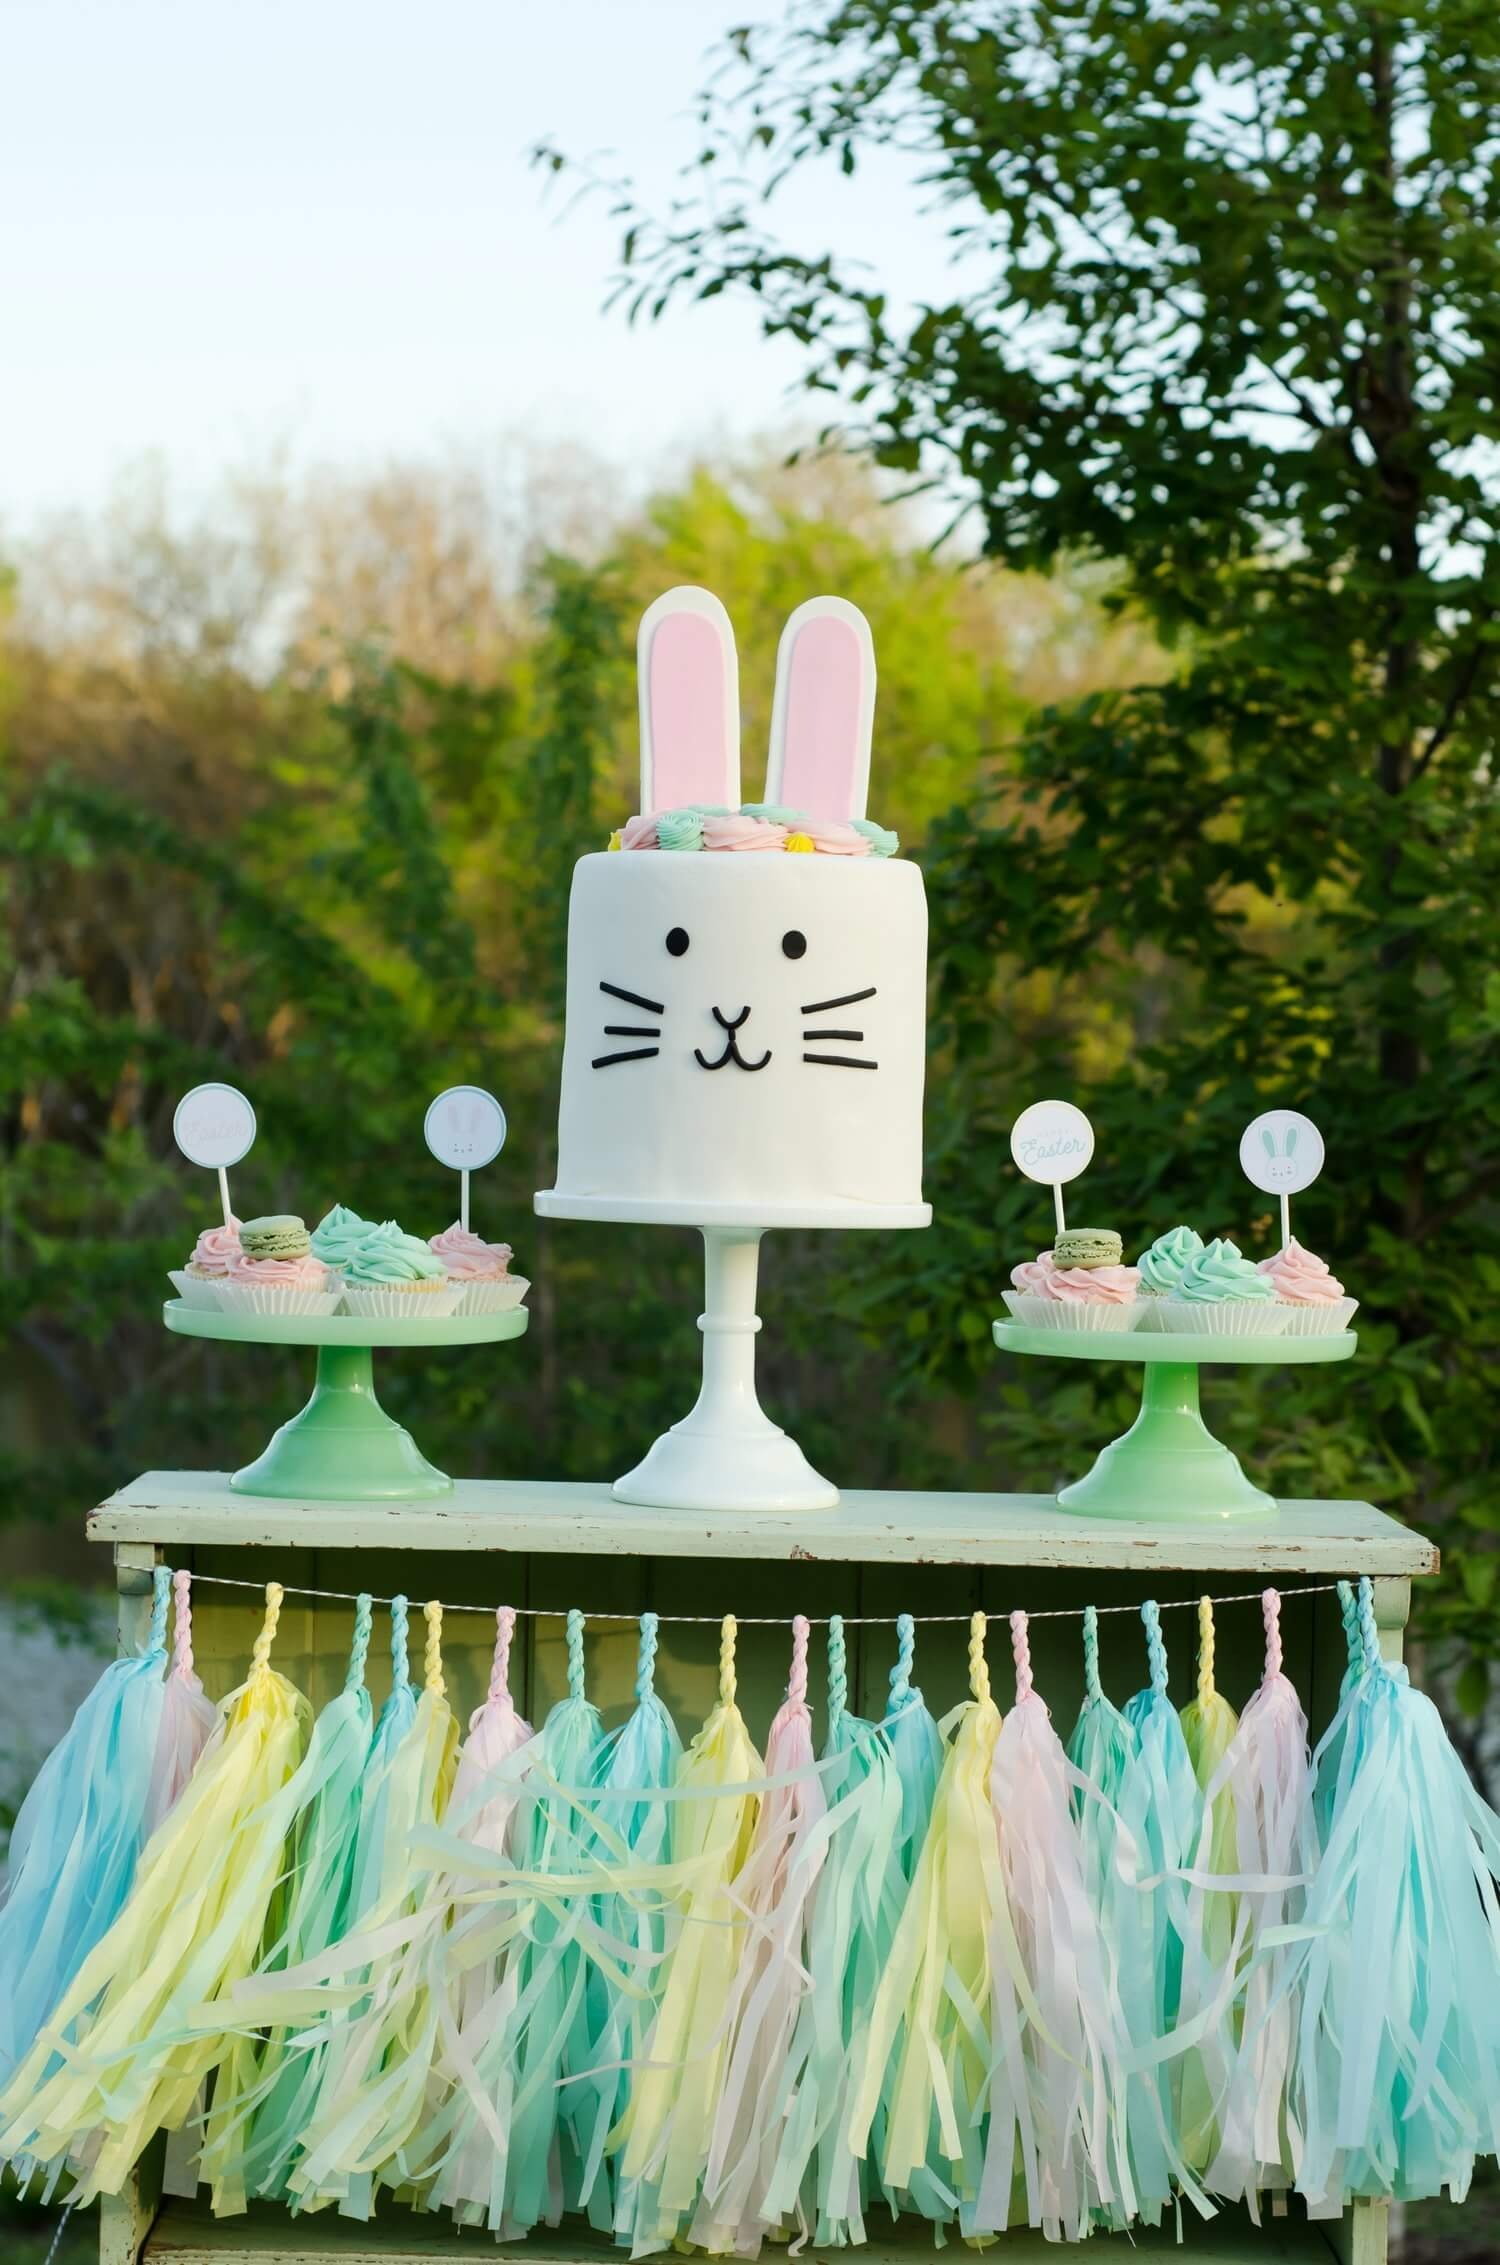 A perfectly matched tassel garland will elevate your party cake and cupcakes.. See more Easter Garden Party Ideas for Kids on Mint Event Design www.minteventdesign.com #easterparty #gardenparty #partysupplies #eastercake #partydecor